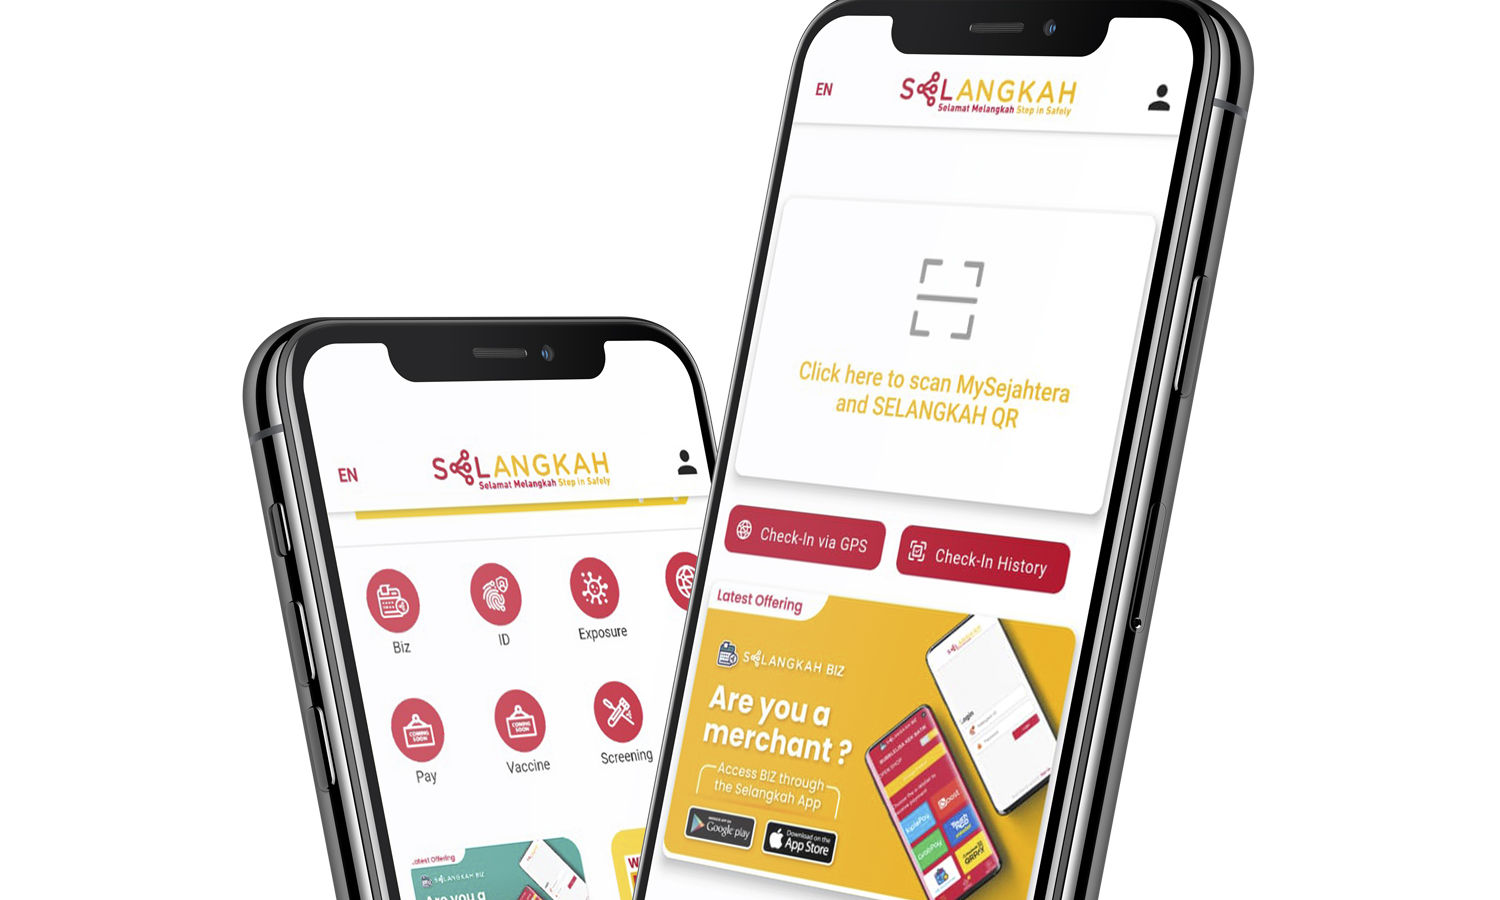 Selangkah Rolls Out Enhanced Mobile App With Commercial Features